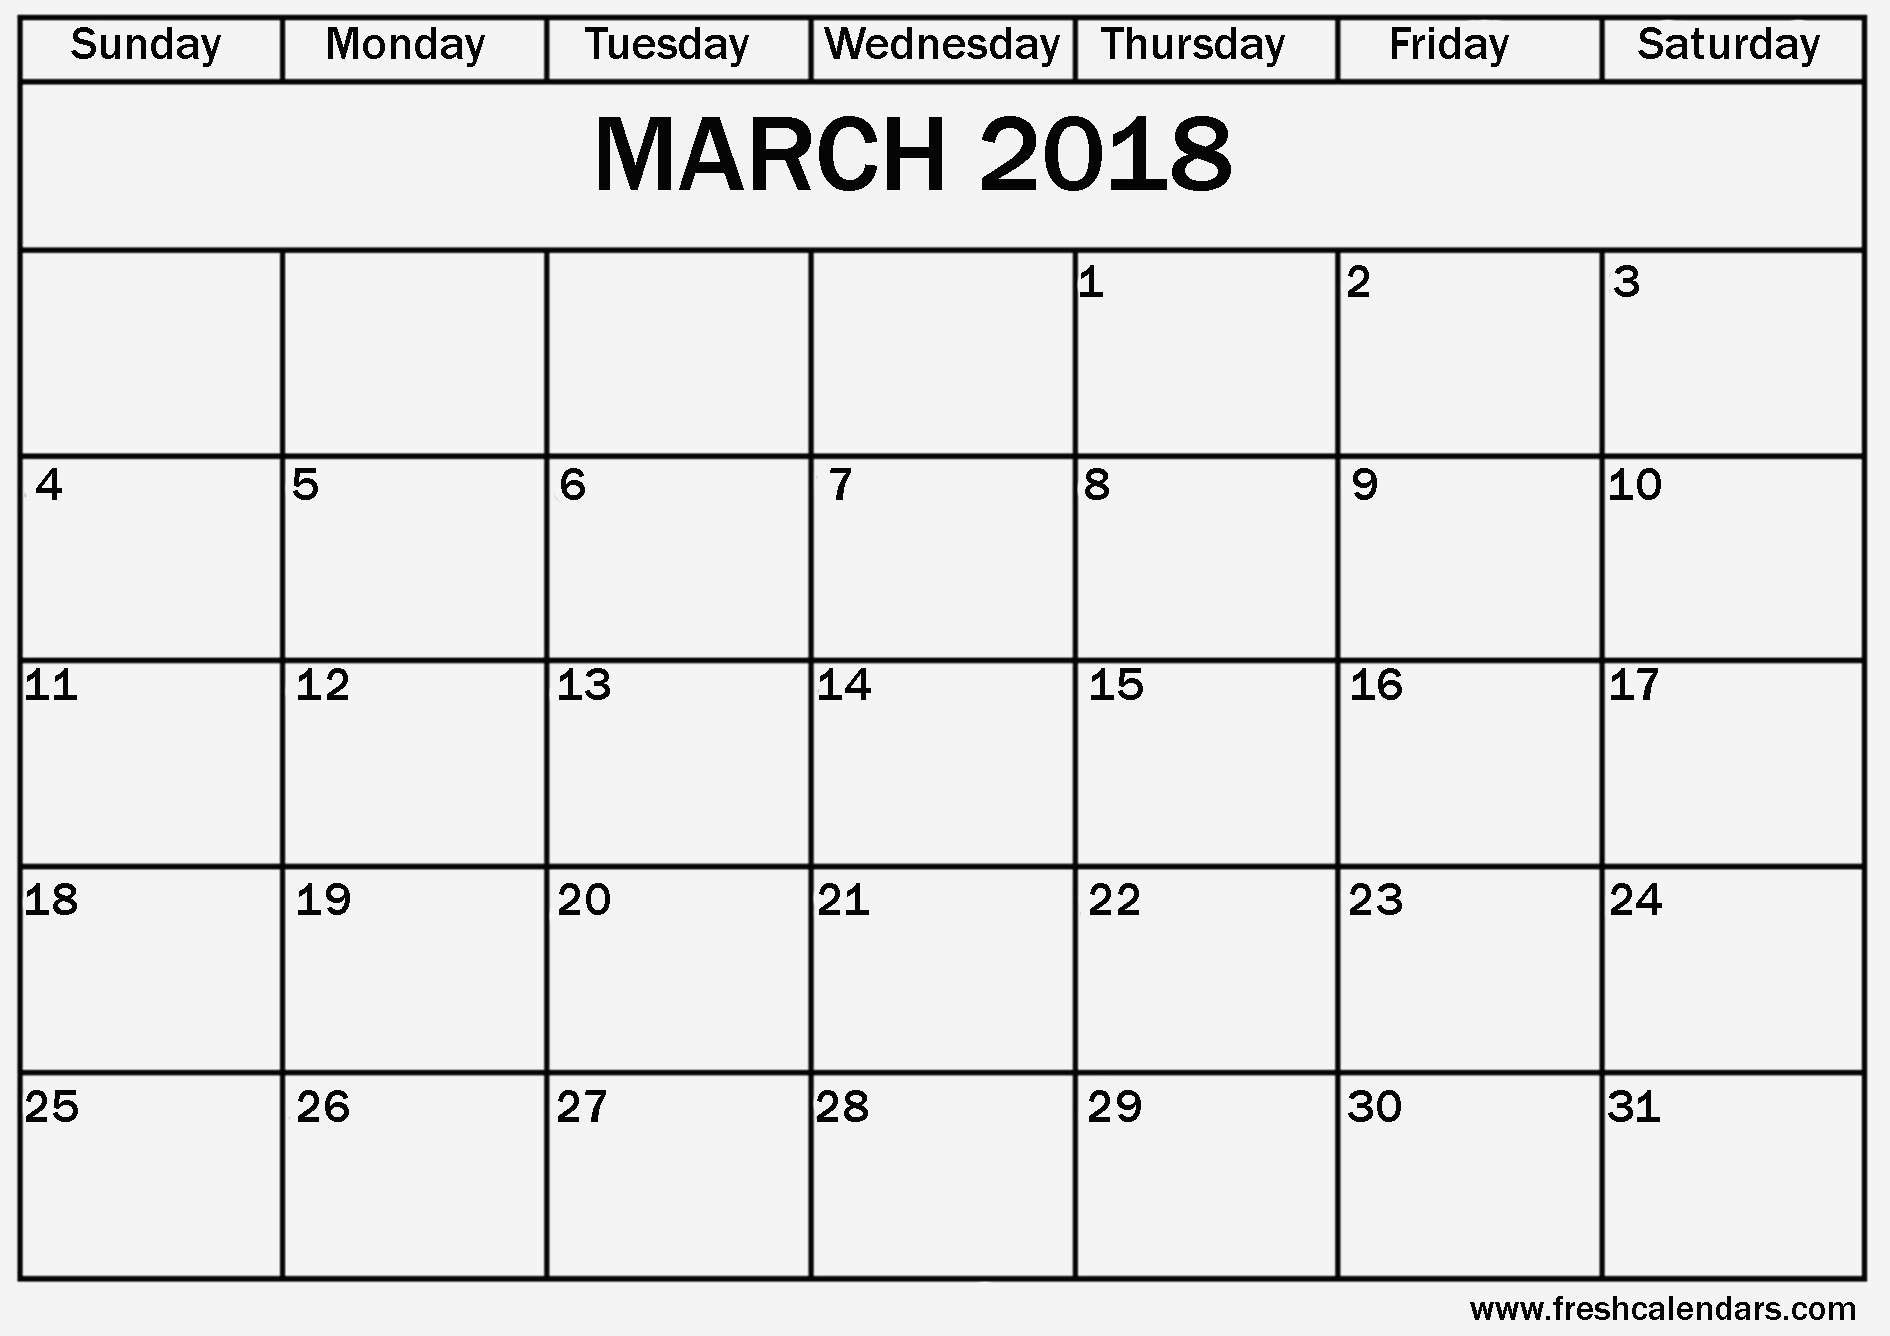 March Calendar Templates Mejores Y Más Novedosos Excel Monthly Calendar Template the Spreadsheet Library Of March Calendar Templates Más Arriba-a-fecha 2016 Calendar Printable Cute Best March Calendar with Holidays